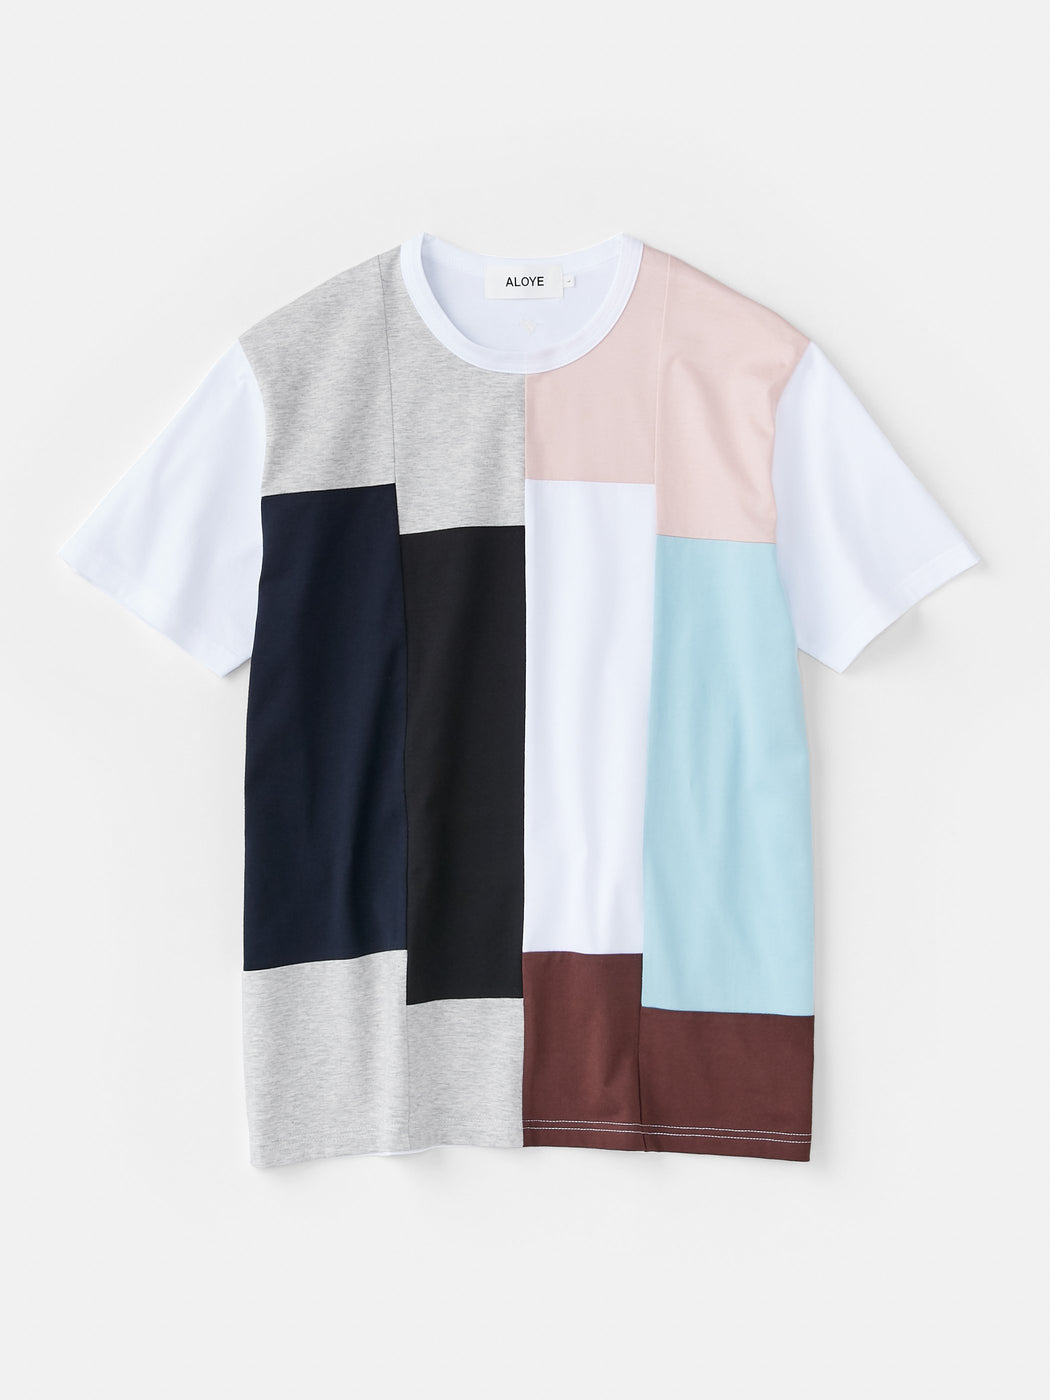 ALOYE Color Blocks Men's Short Sleeve T-shirt Heather Gray-Pink Rectangles